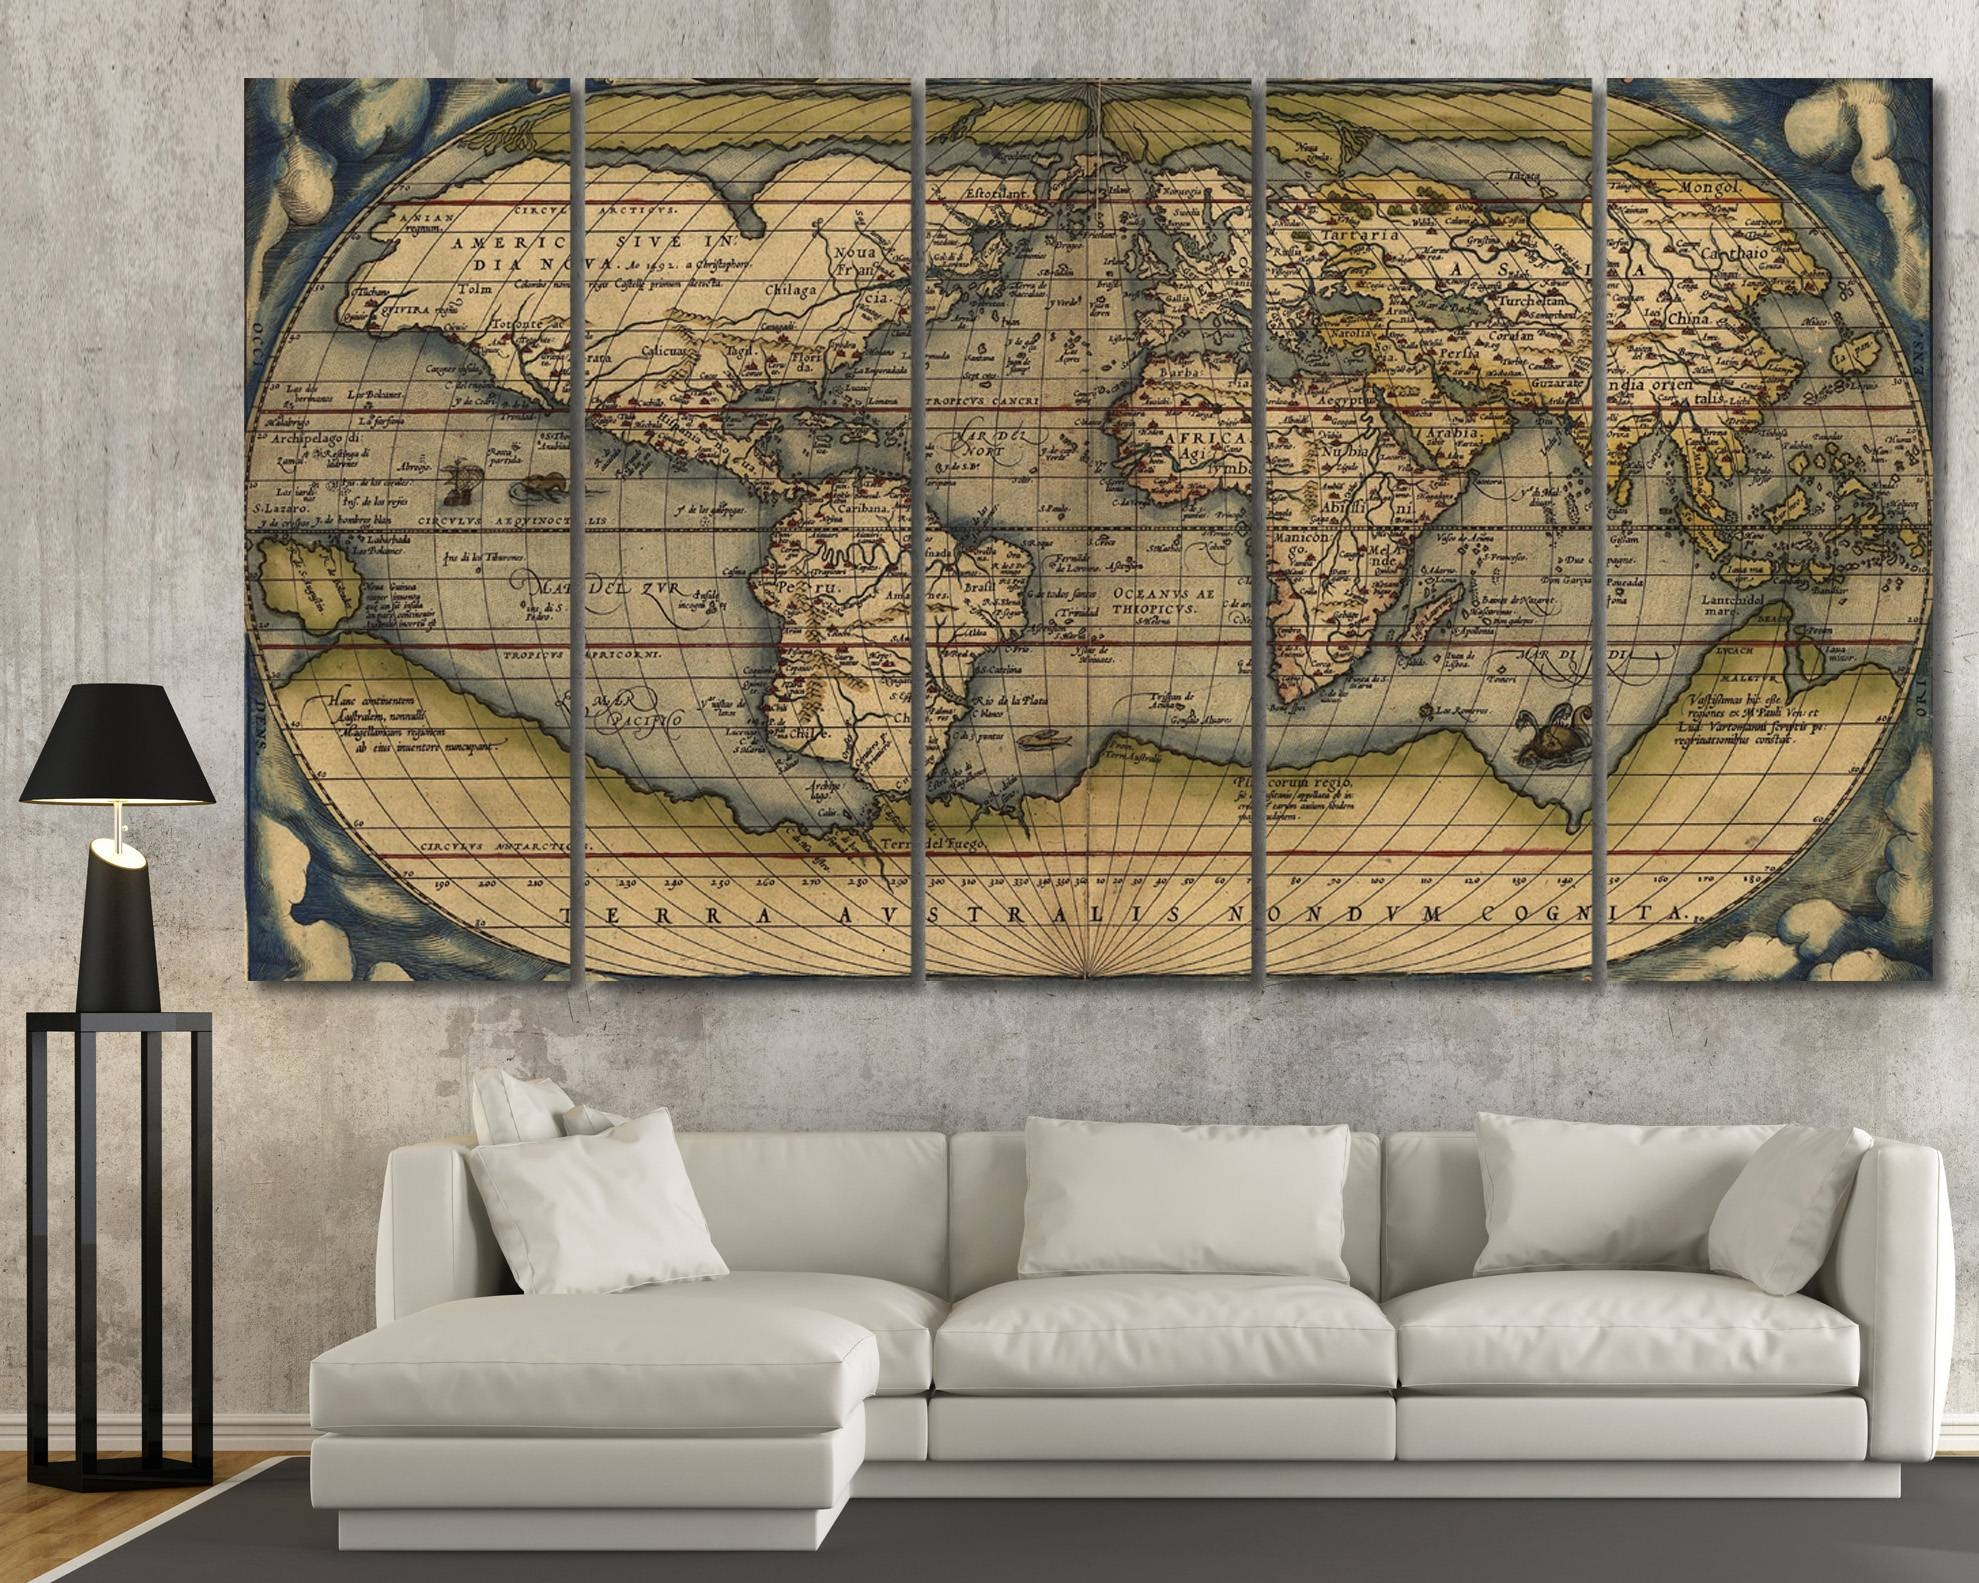 Large Vintage Wall Art Old World Map At Texelprintart Intended For Current Canvas Map Wall Art (View 10 of 20)